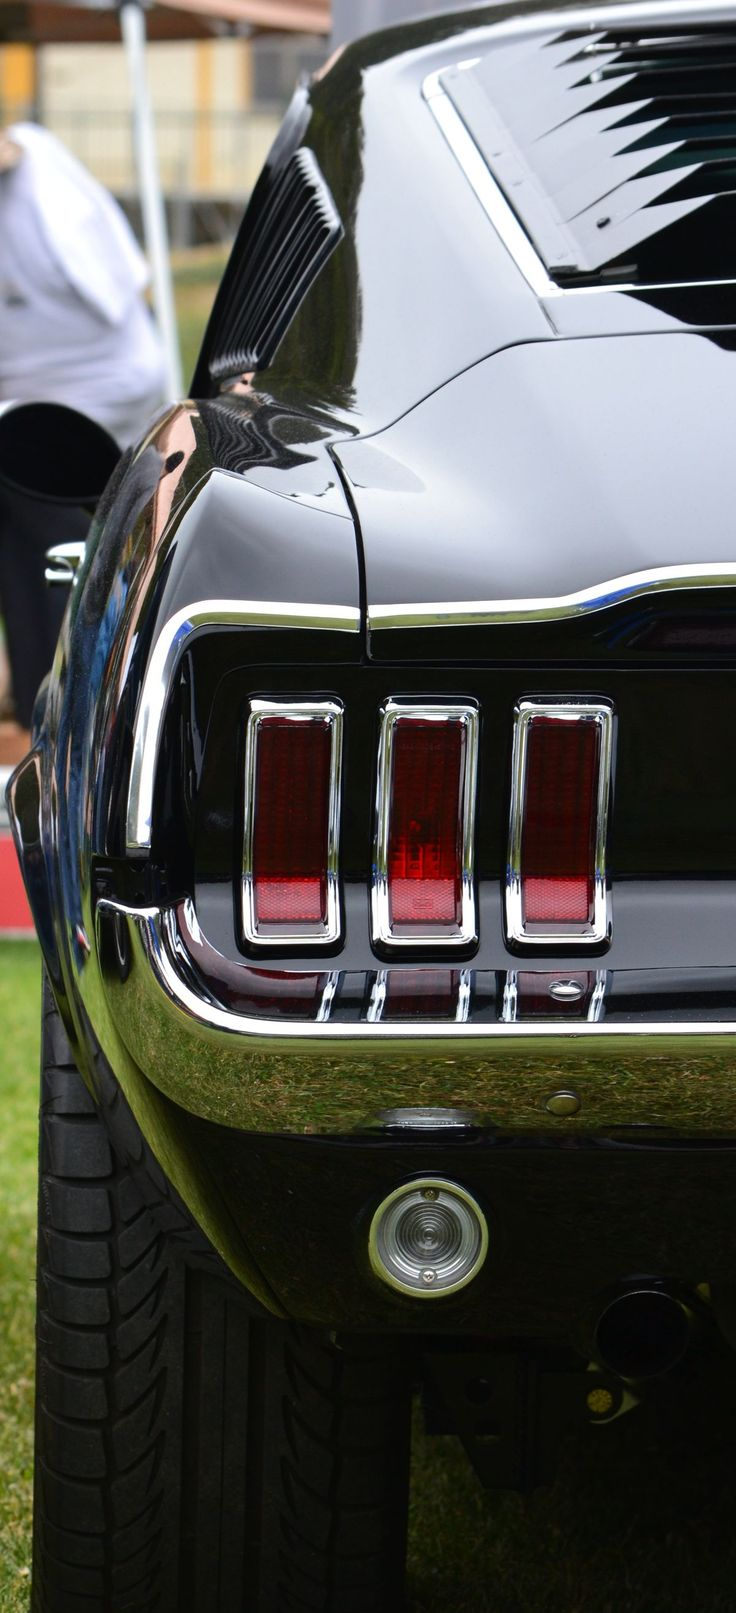 Terra nova hs car show now classic mustang tail lights i think help me out